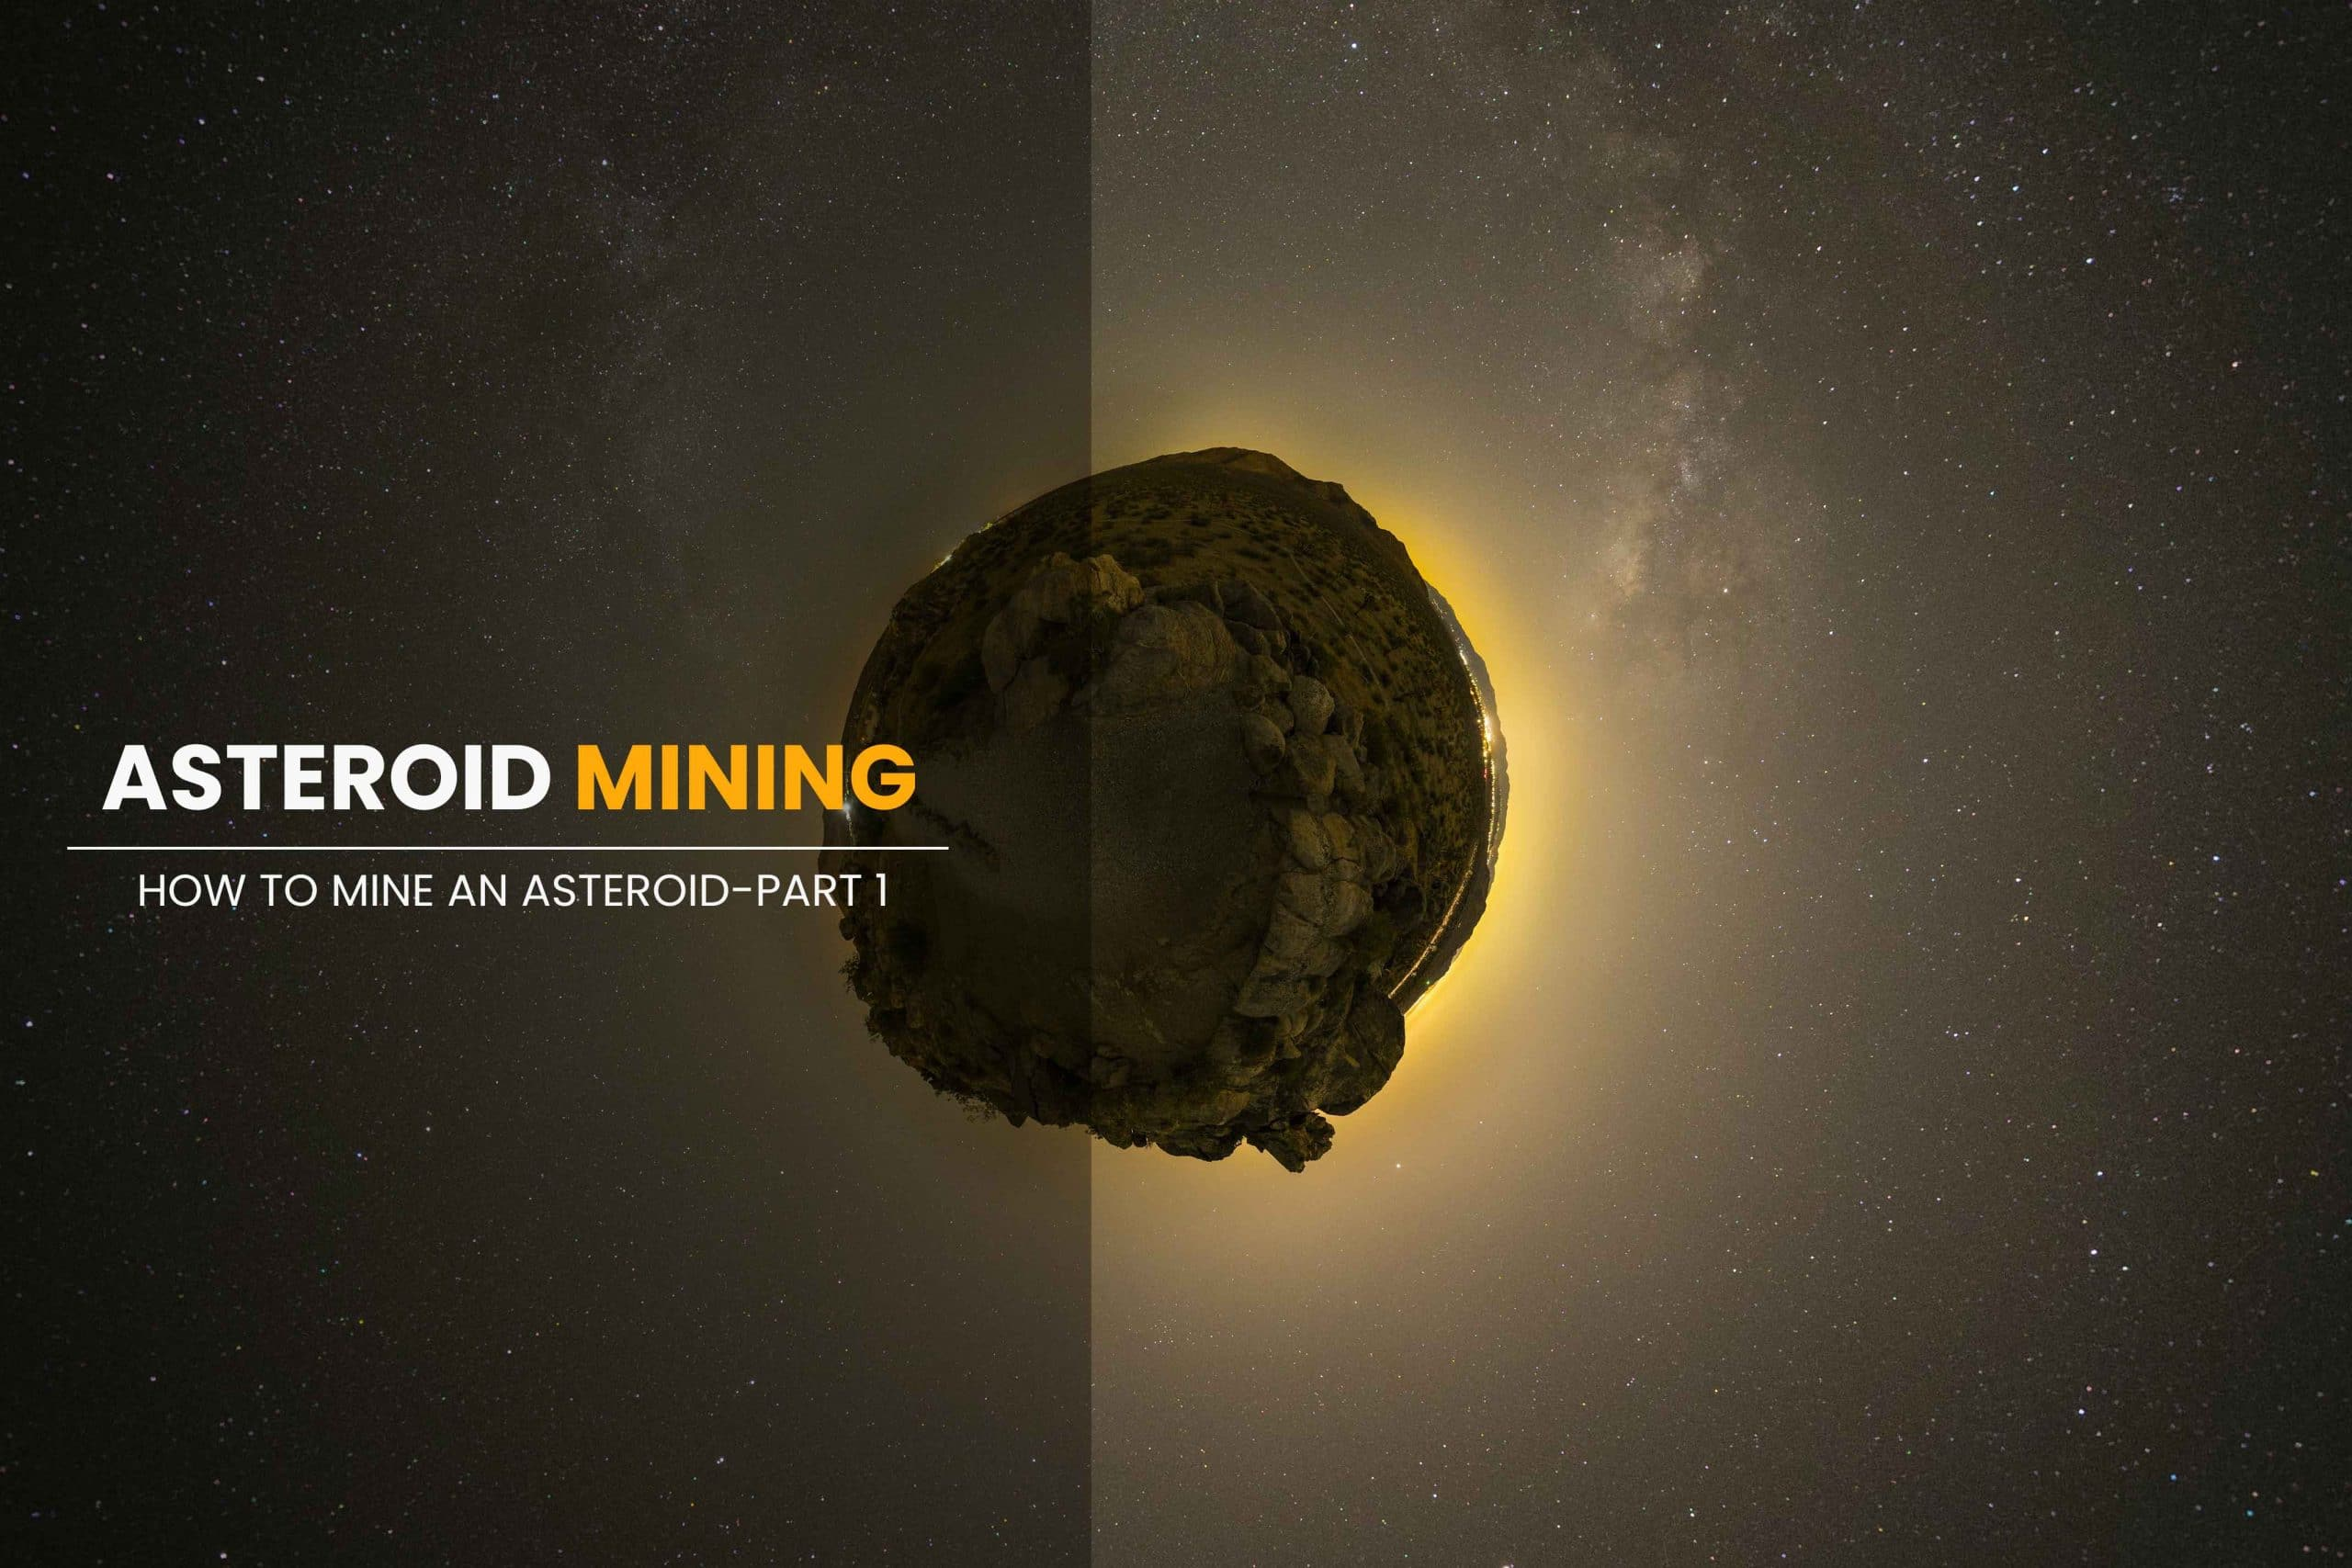 How-to-Mine-an-Asteroid-Part-1